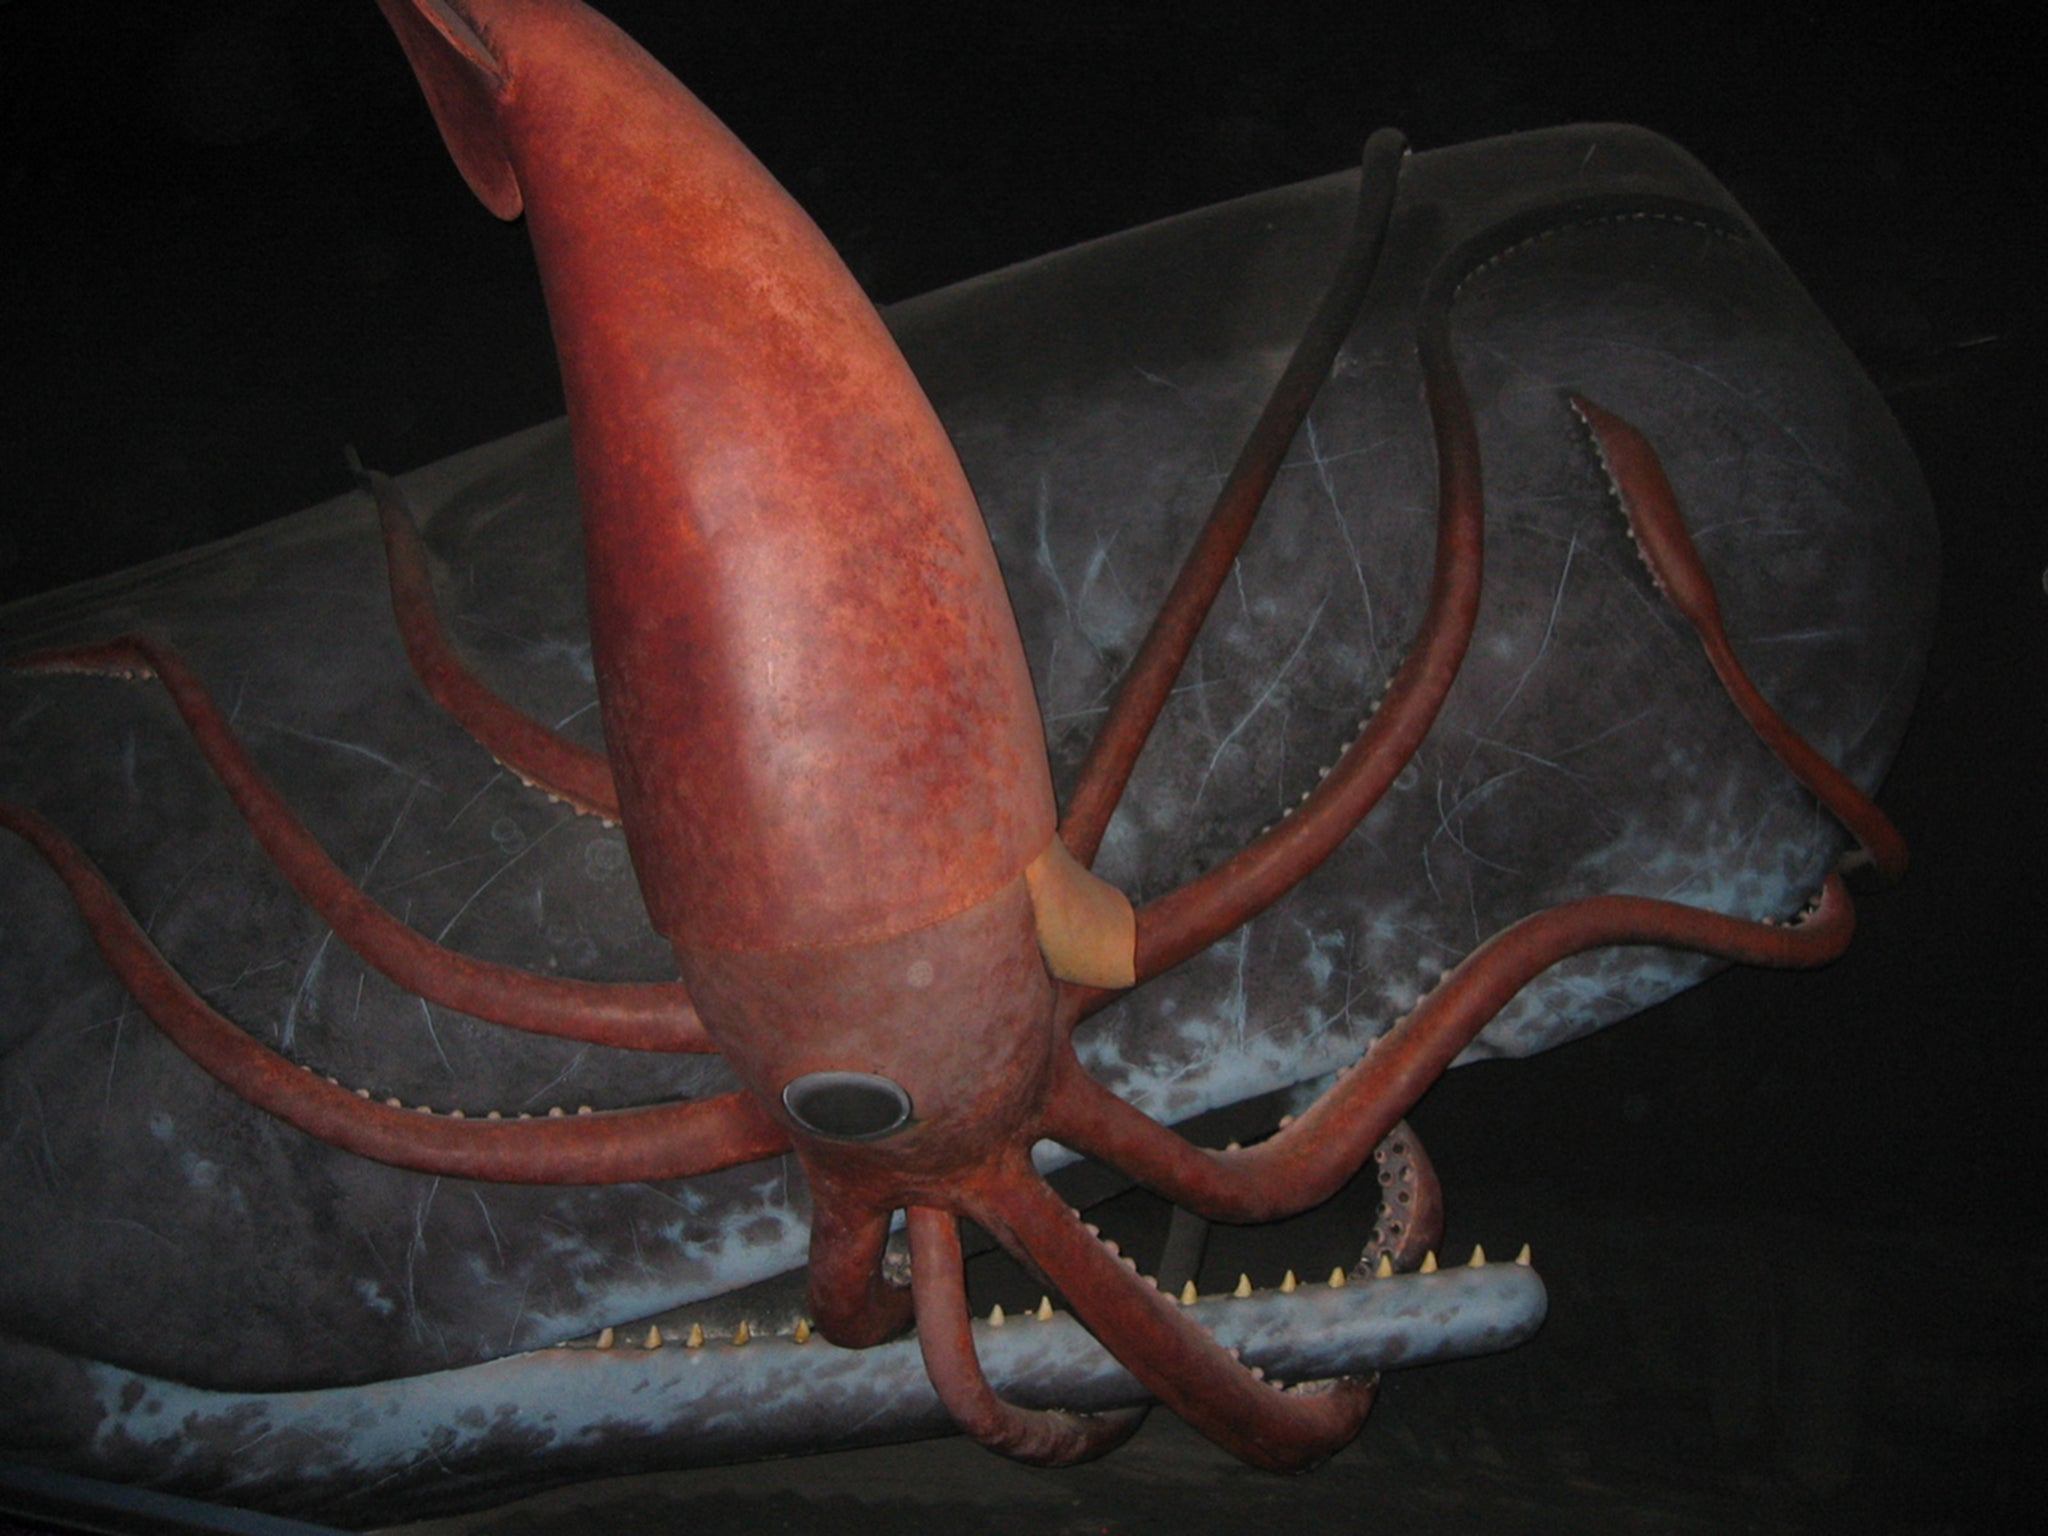 Kraken The Real Life Origins Of Legendary Sea Monster